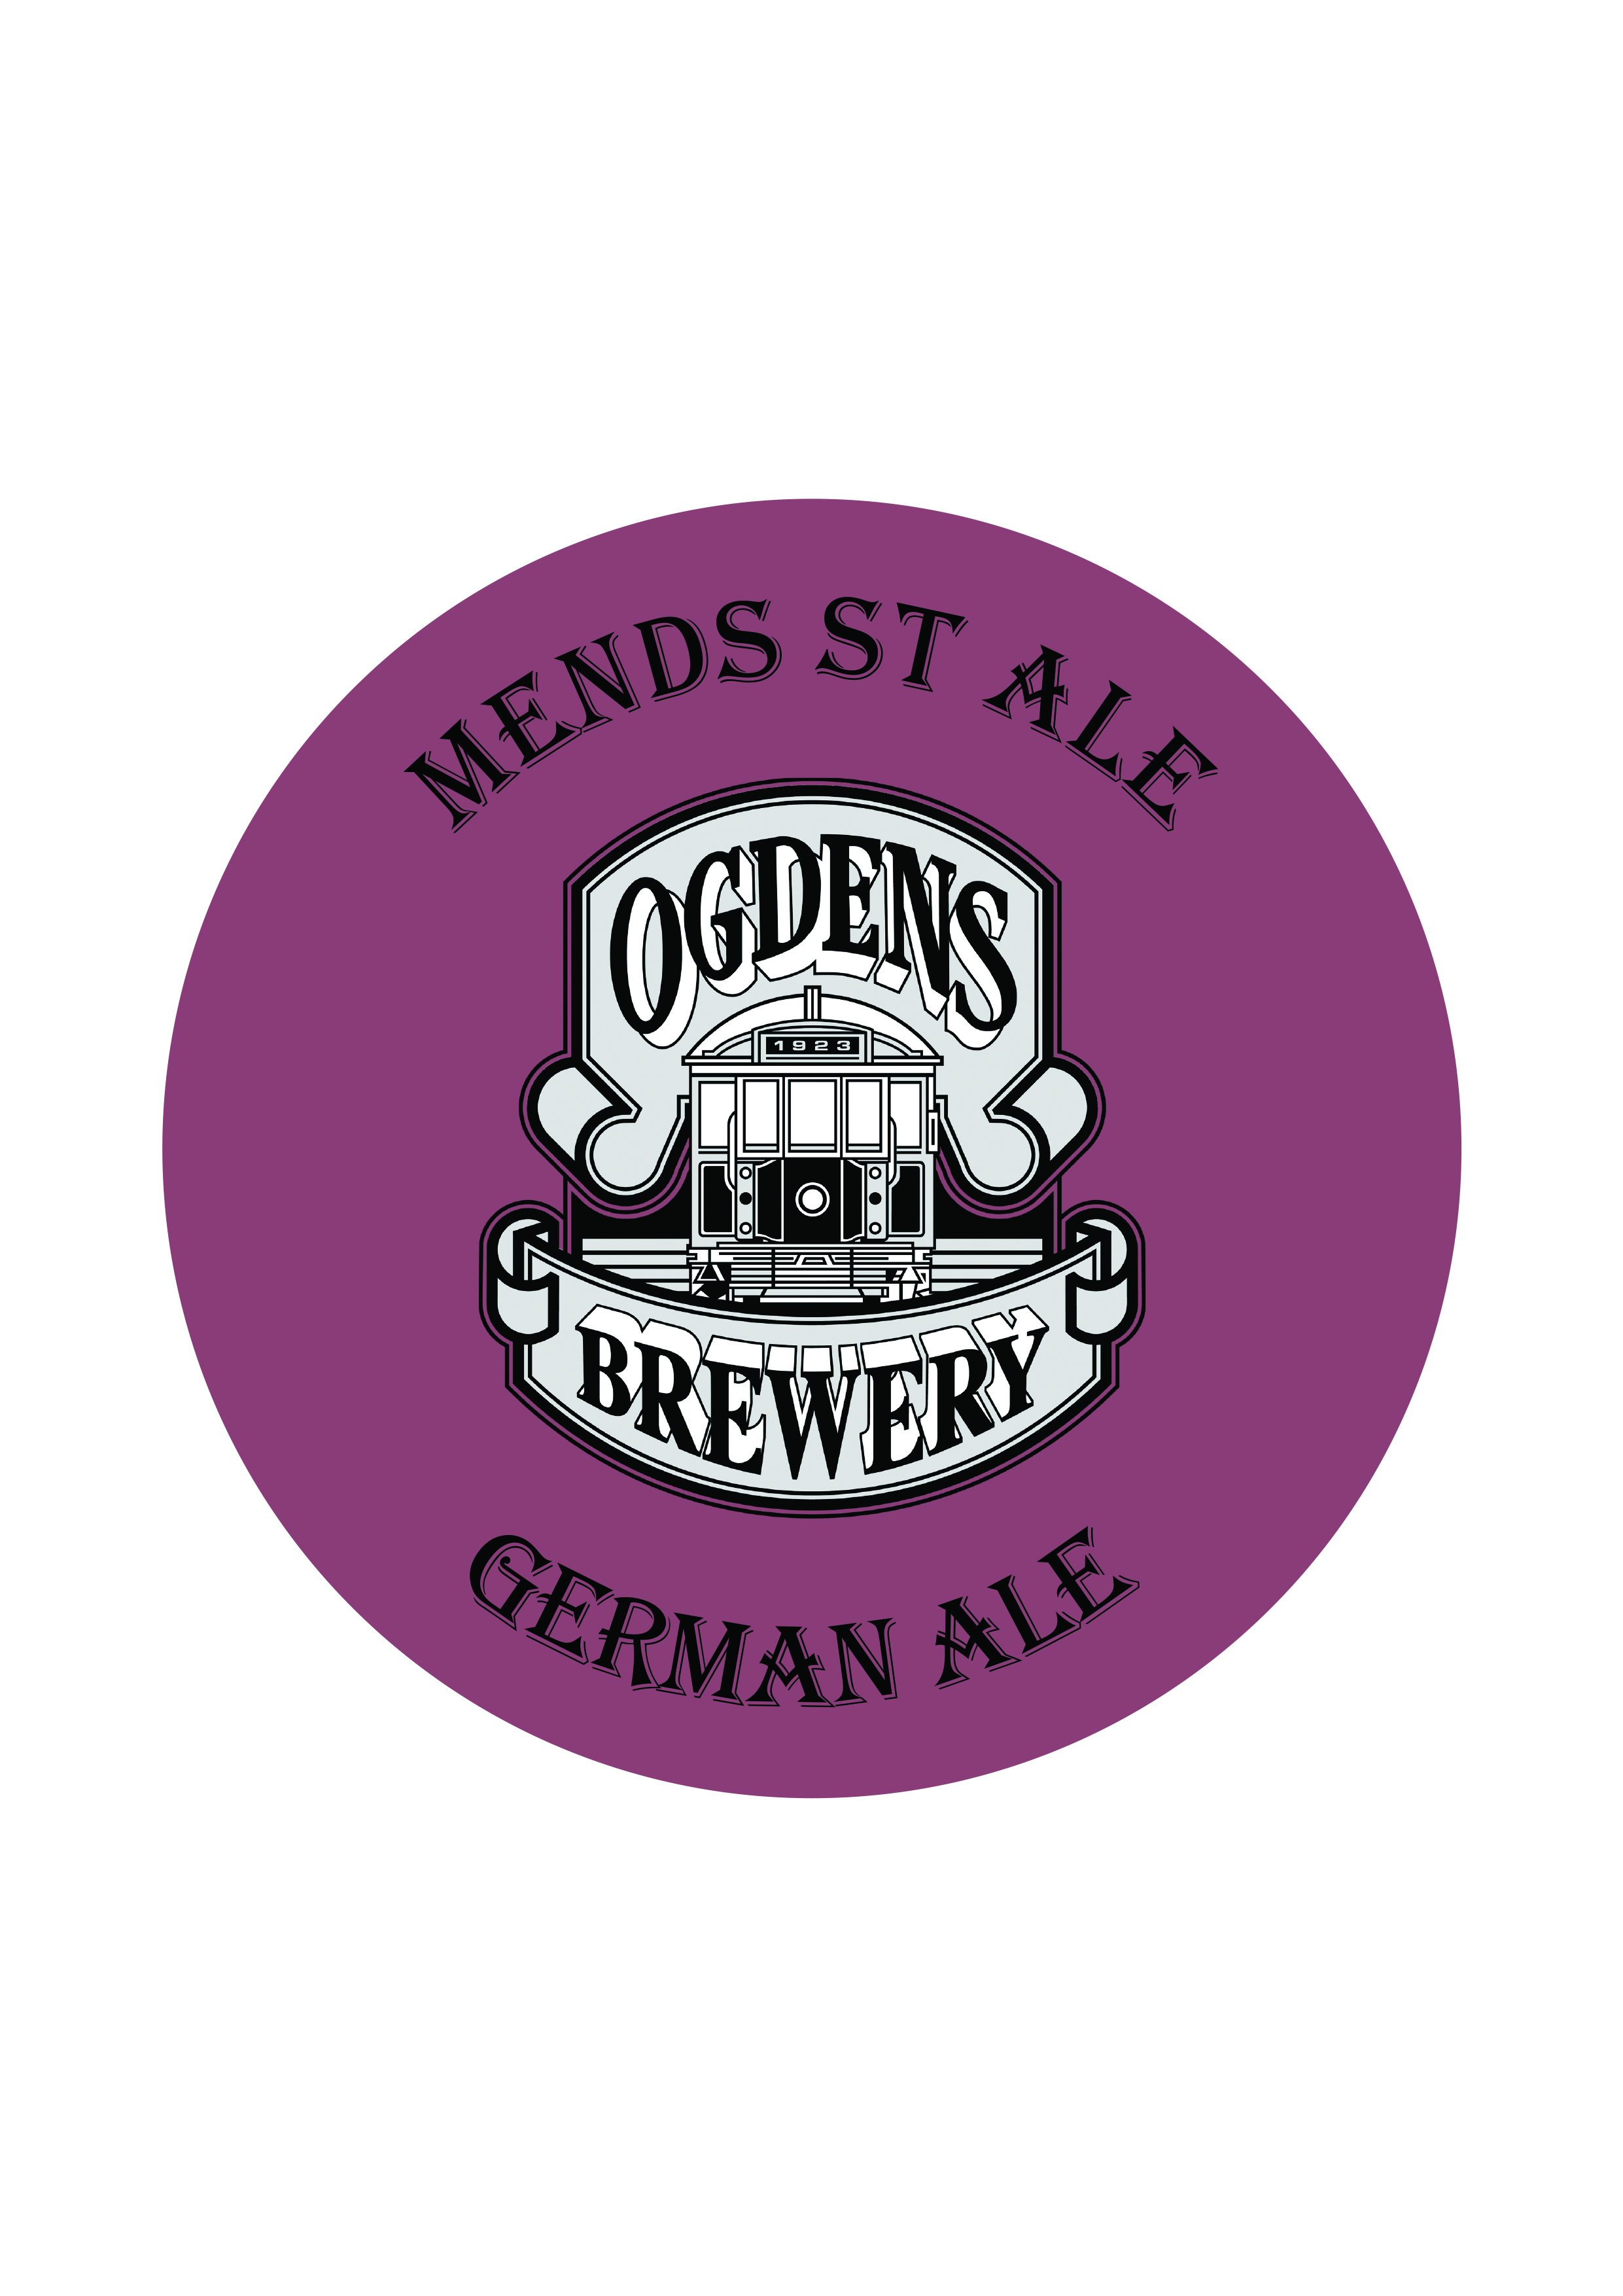 Mends St Ale   German Ale   5.0% - Based on a classic German Altbier from the Altstadt in Dusseldorf 'Alt' meaning old and 'stadt' for town. A malty beer with prominent Munich malt (toasty and bready) flavours that are well supported by assertive bitterness.